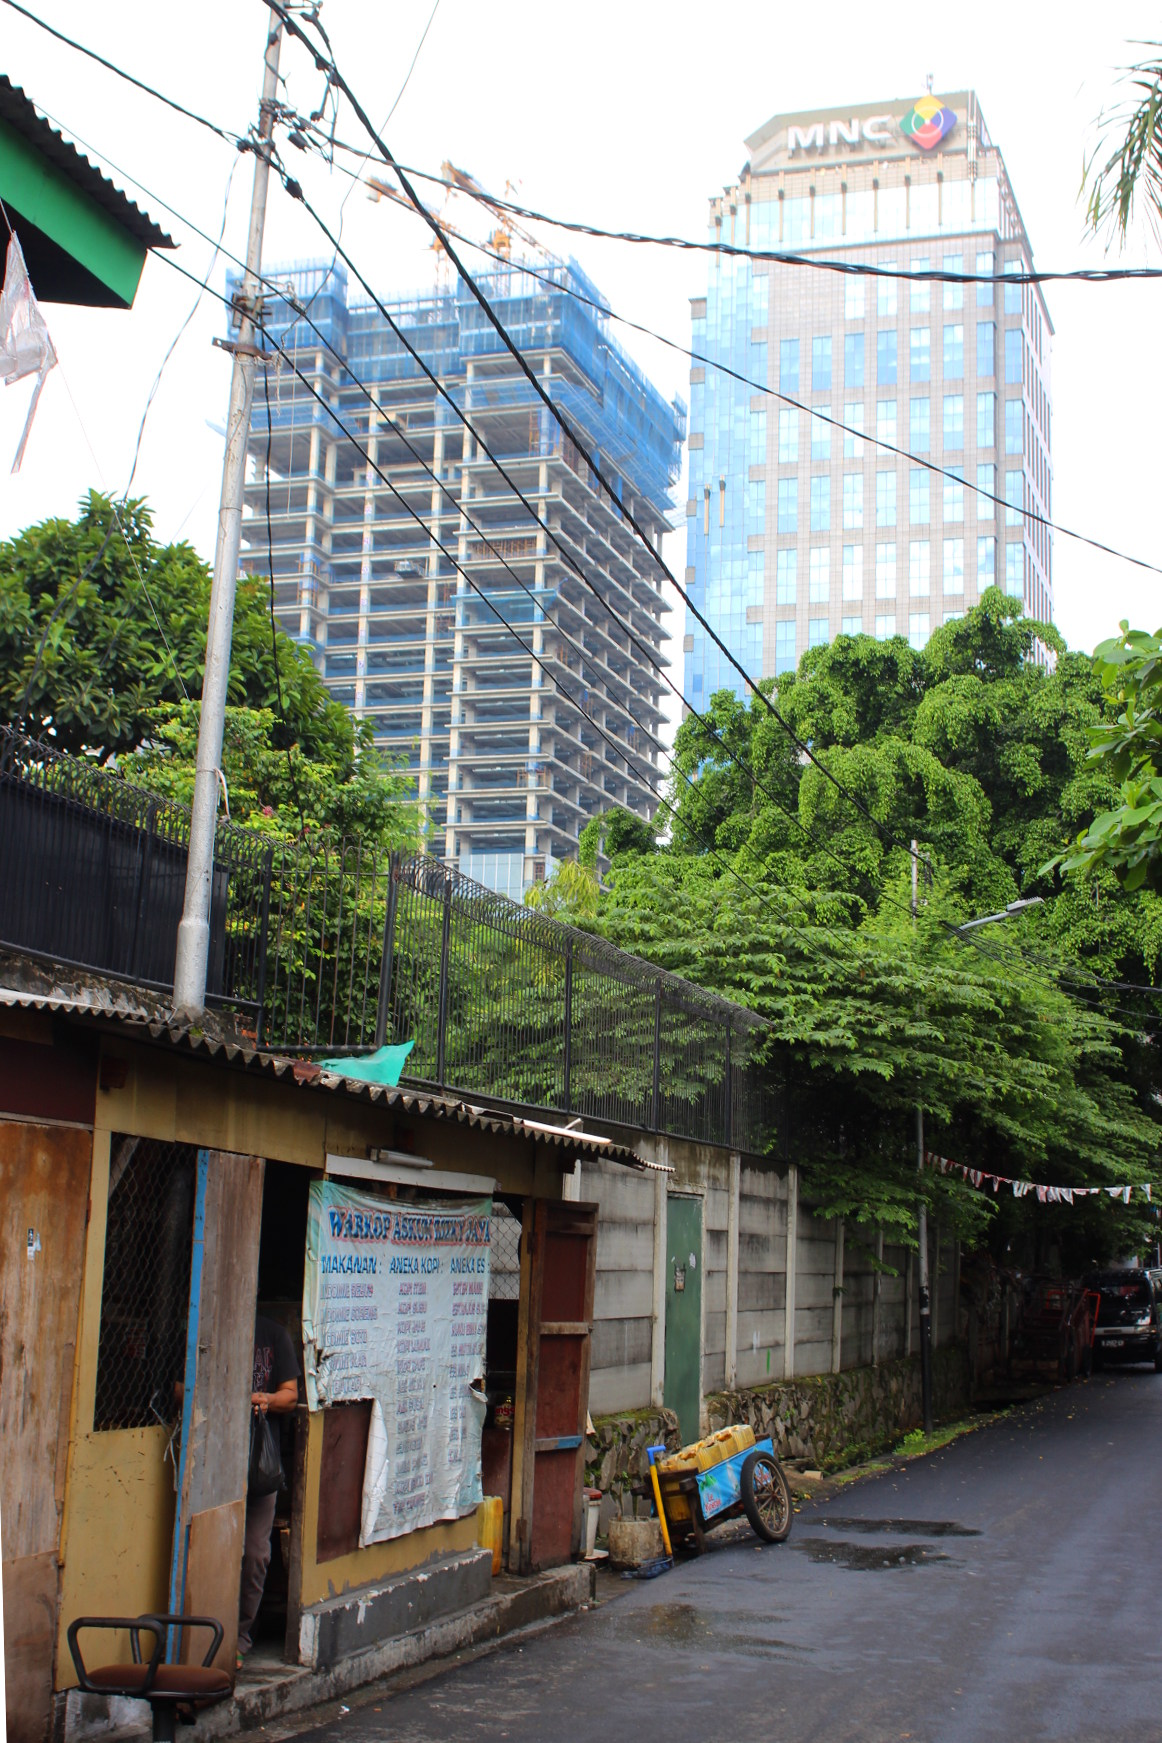 Jakarta buildings and a small house